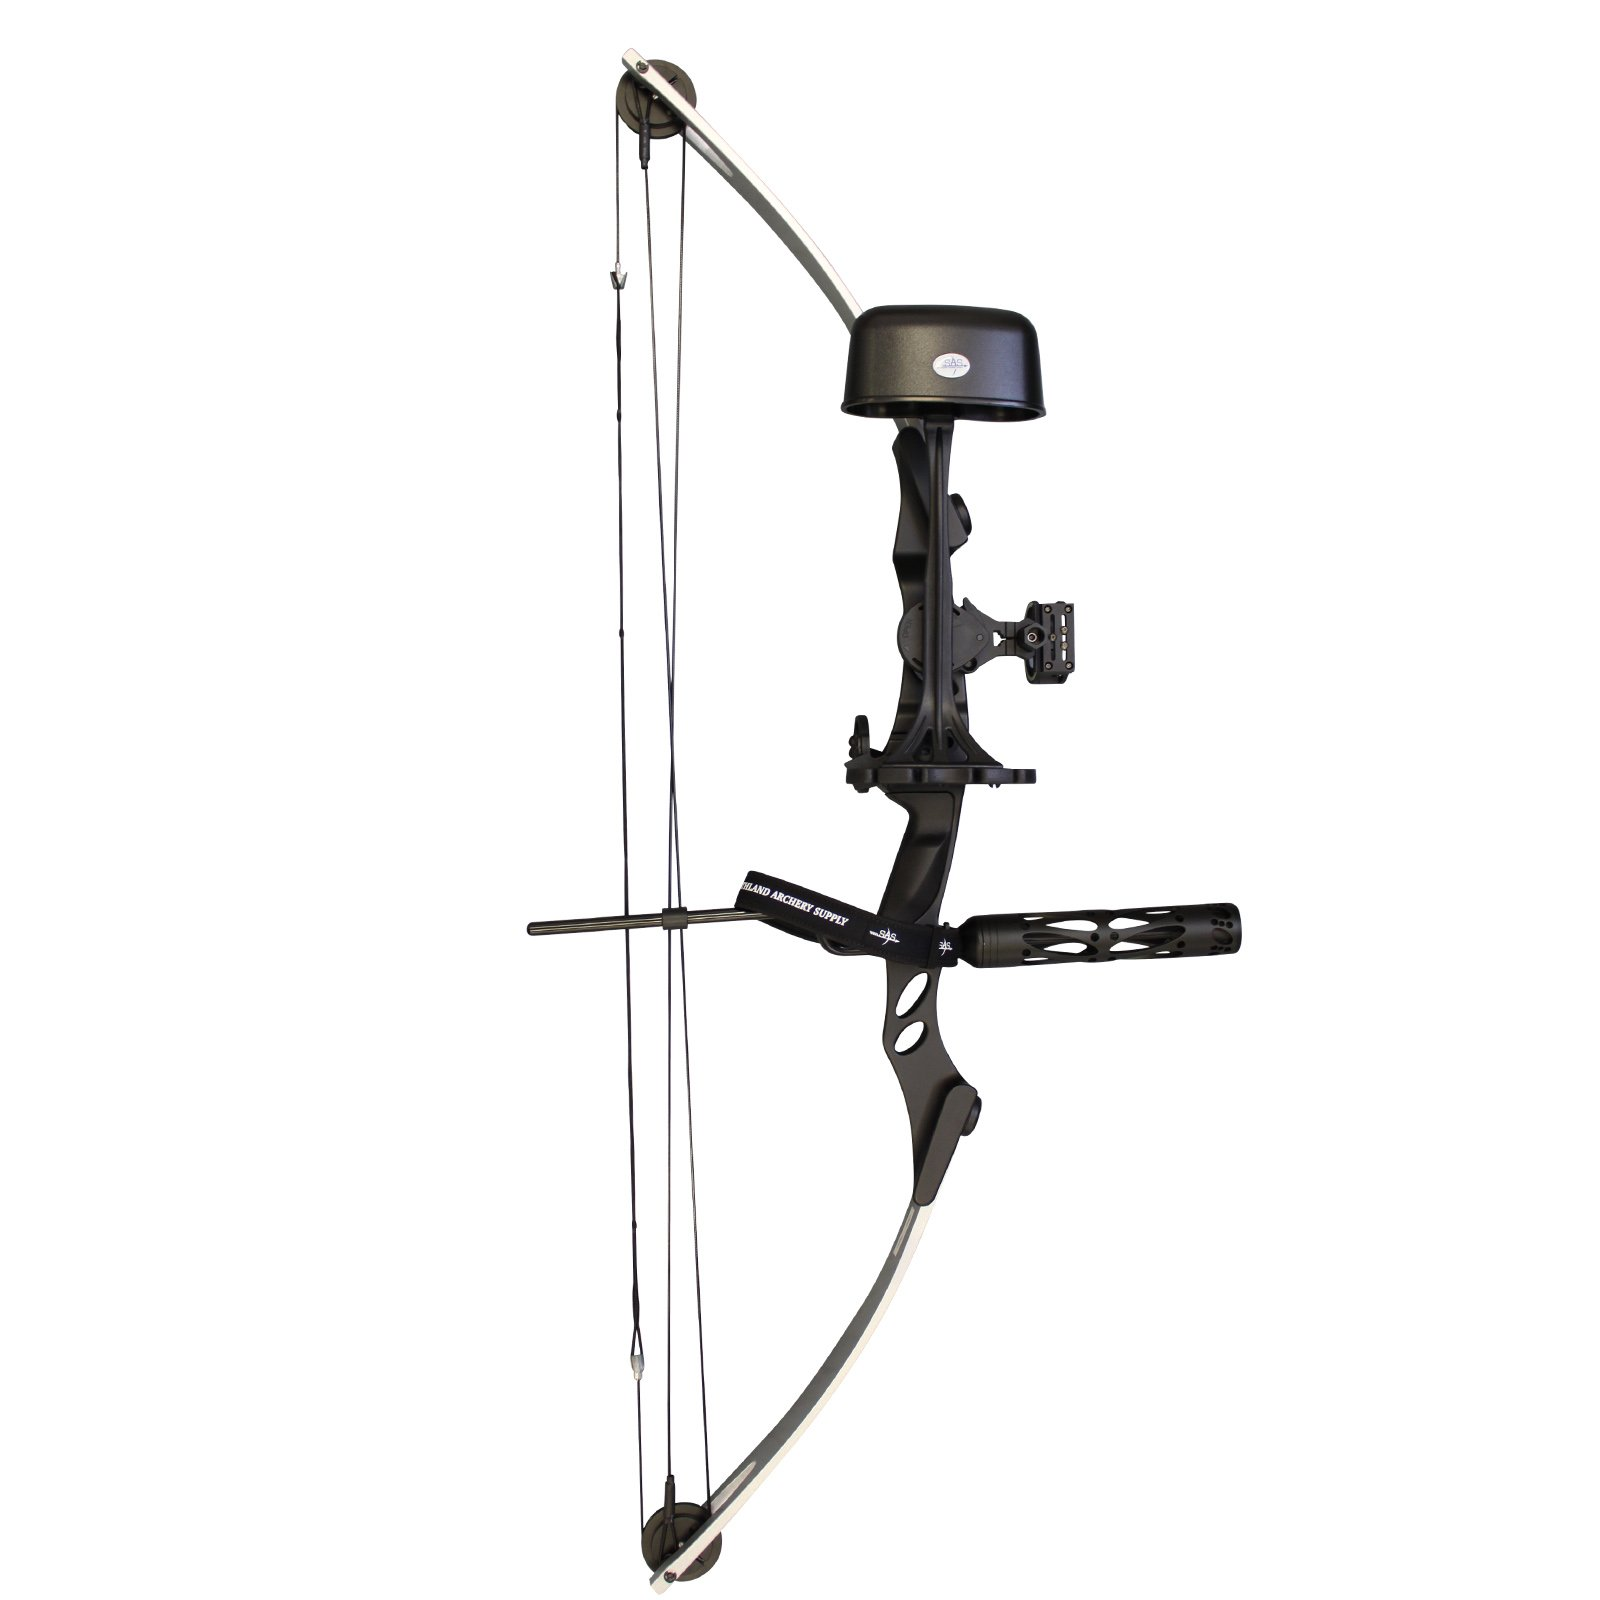 SAS Siege 55 lb 29'' Compound Bow w/ 5-Spot Paper Target (Silver/Black w/ Pro Package)